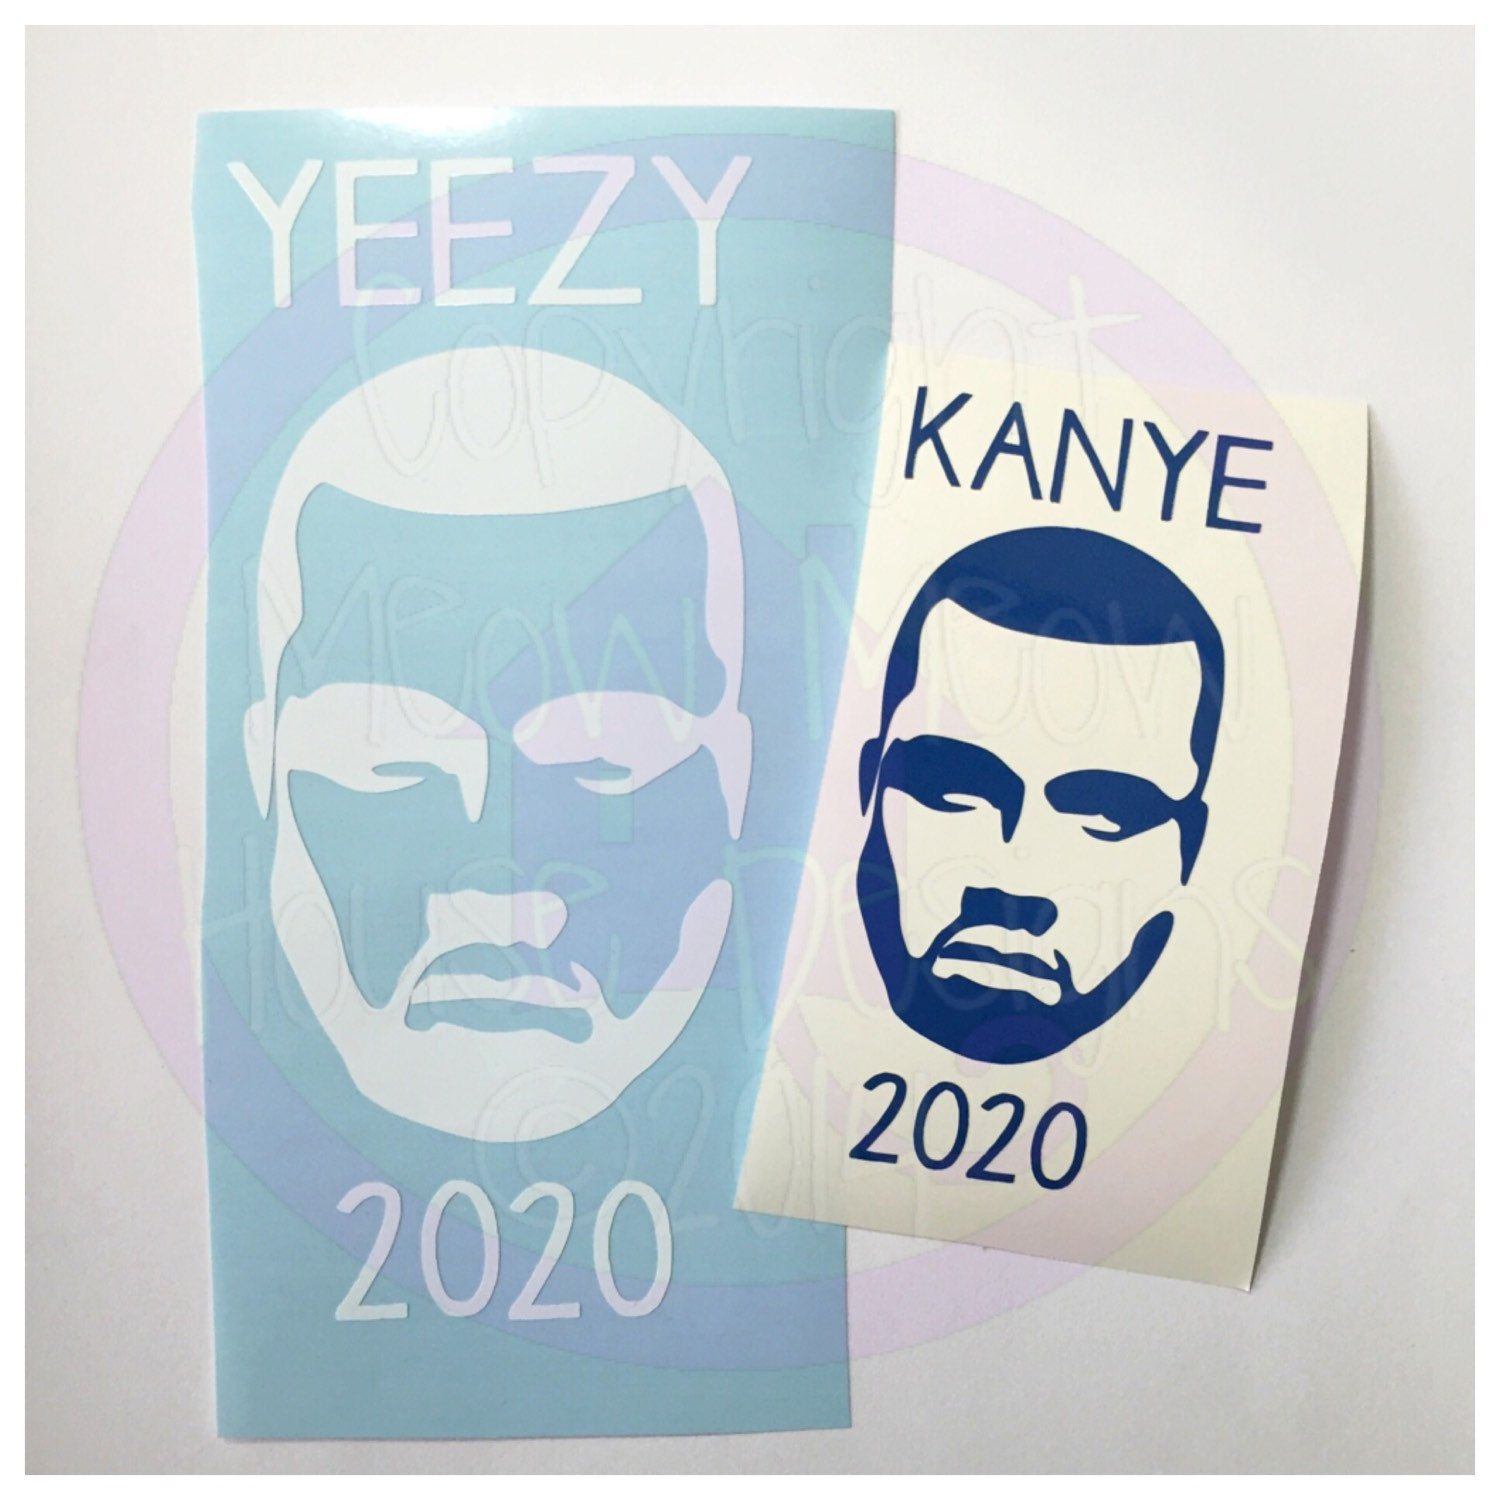 Kanye West 2020 Decal Select Your Size Tons Of Color Choices Gag Gift Hopefully Kanye For President Yeezy For Prez 2020 Electi Kanye Gag Gifts Yeezy